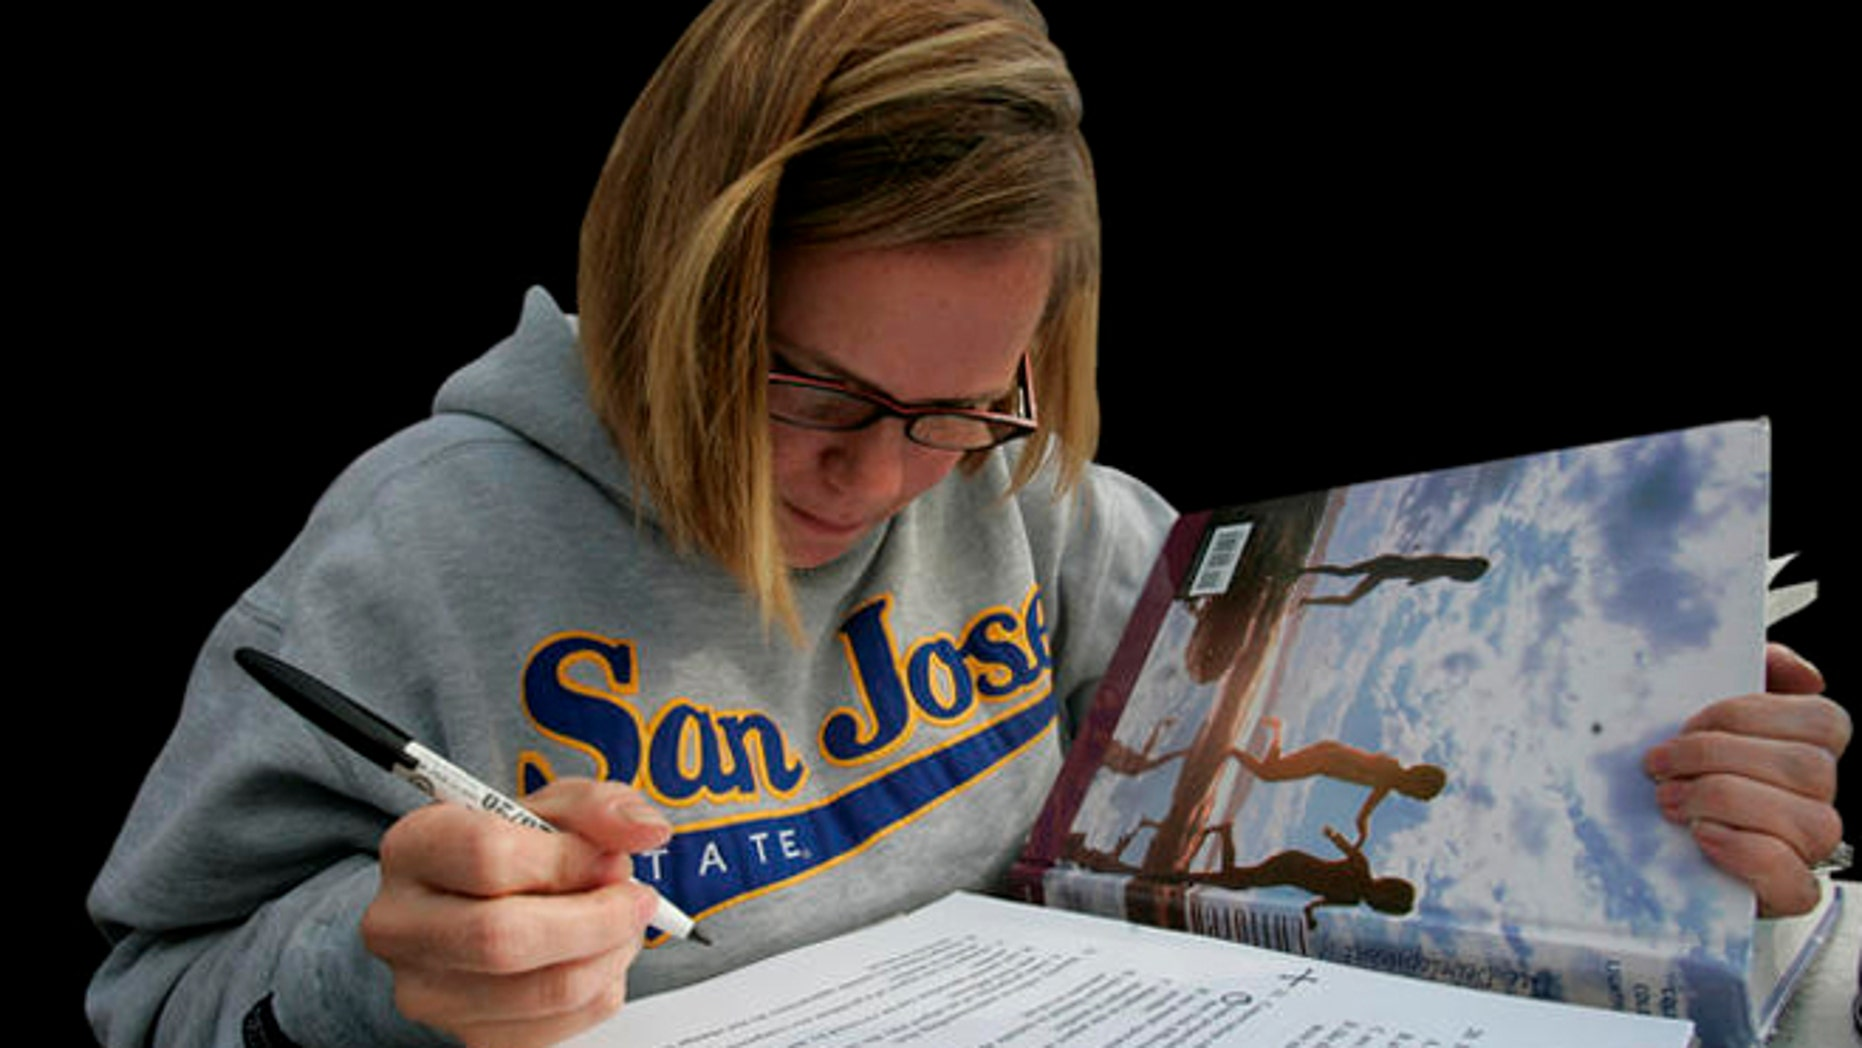 Robin Hendrickson studies for a child development class on the campus of San Jose State  University in San Jose, Calif., Wednesday, Nov. 19, 2008. The California State University system, faced with a budget crisis, is proposing a plan to slash enrollment by 10,000 students from the upcoming academic year. (AP Photo/Marcio Jose Sanchez)